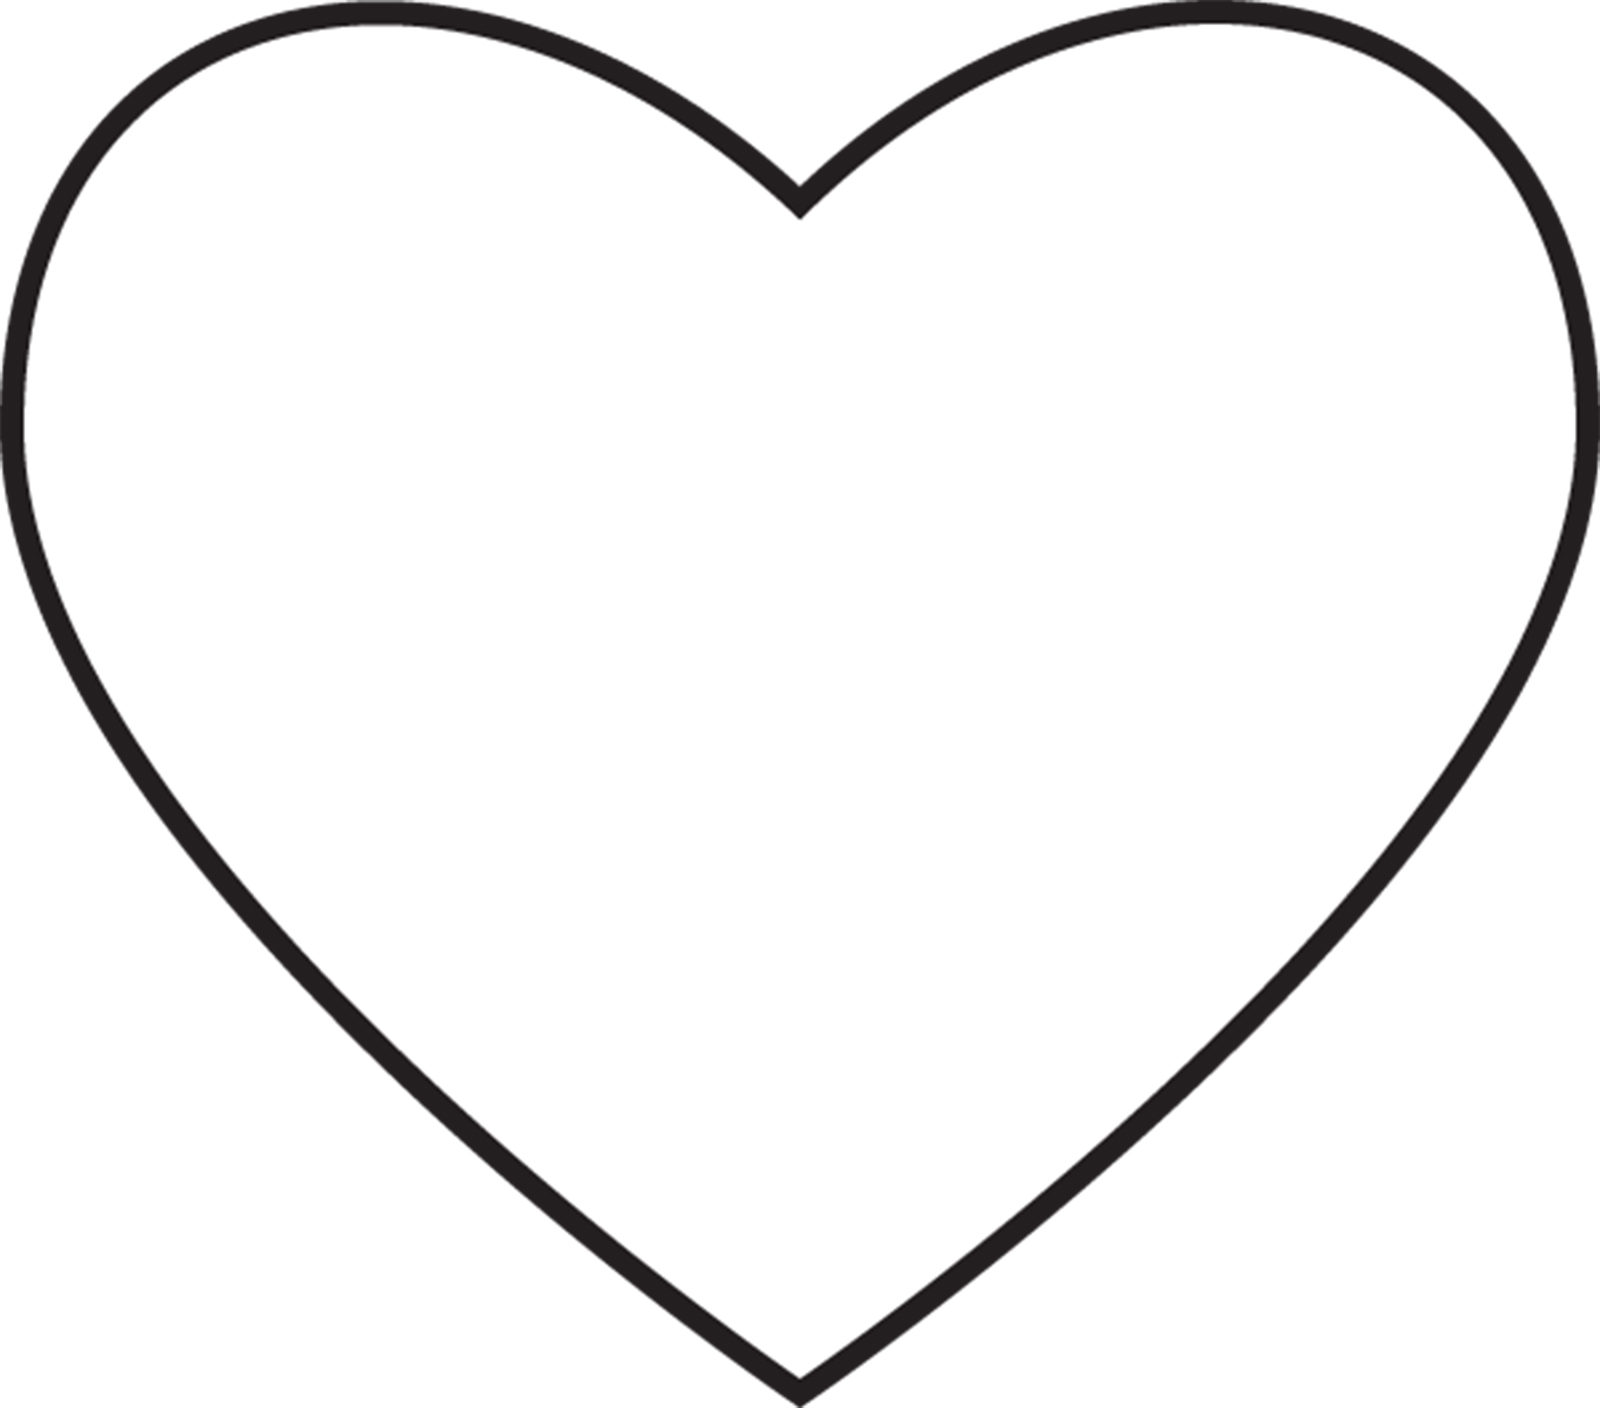 Line Art Heart Outline : Heart